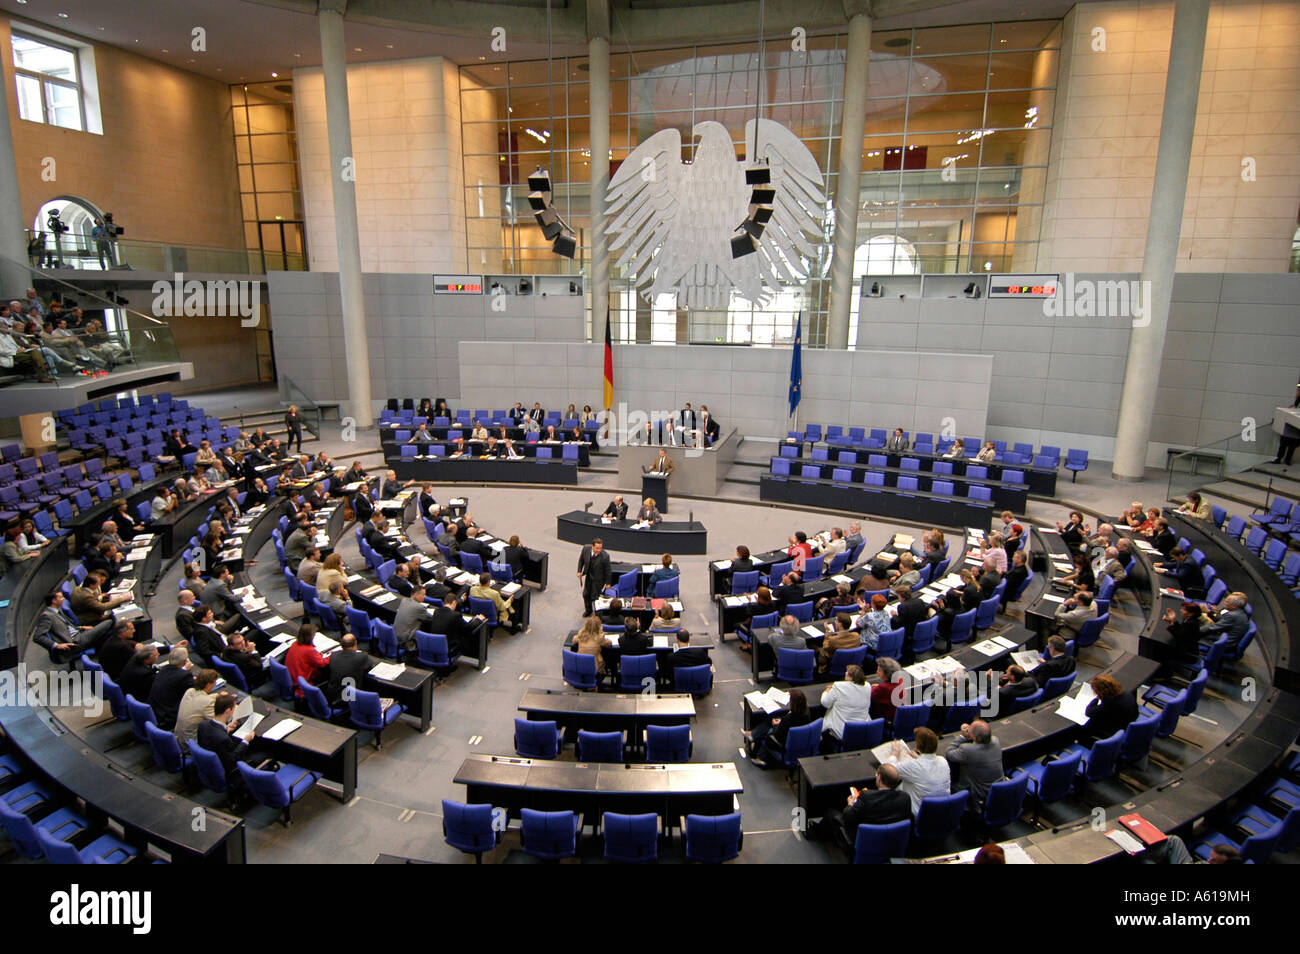 Session of the German Parliament, Berlin, Germany - Stock Image